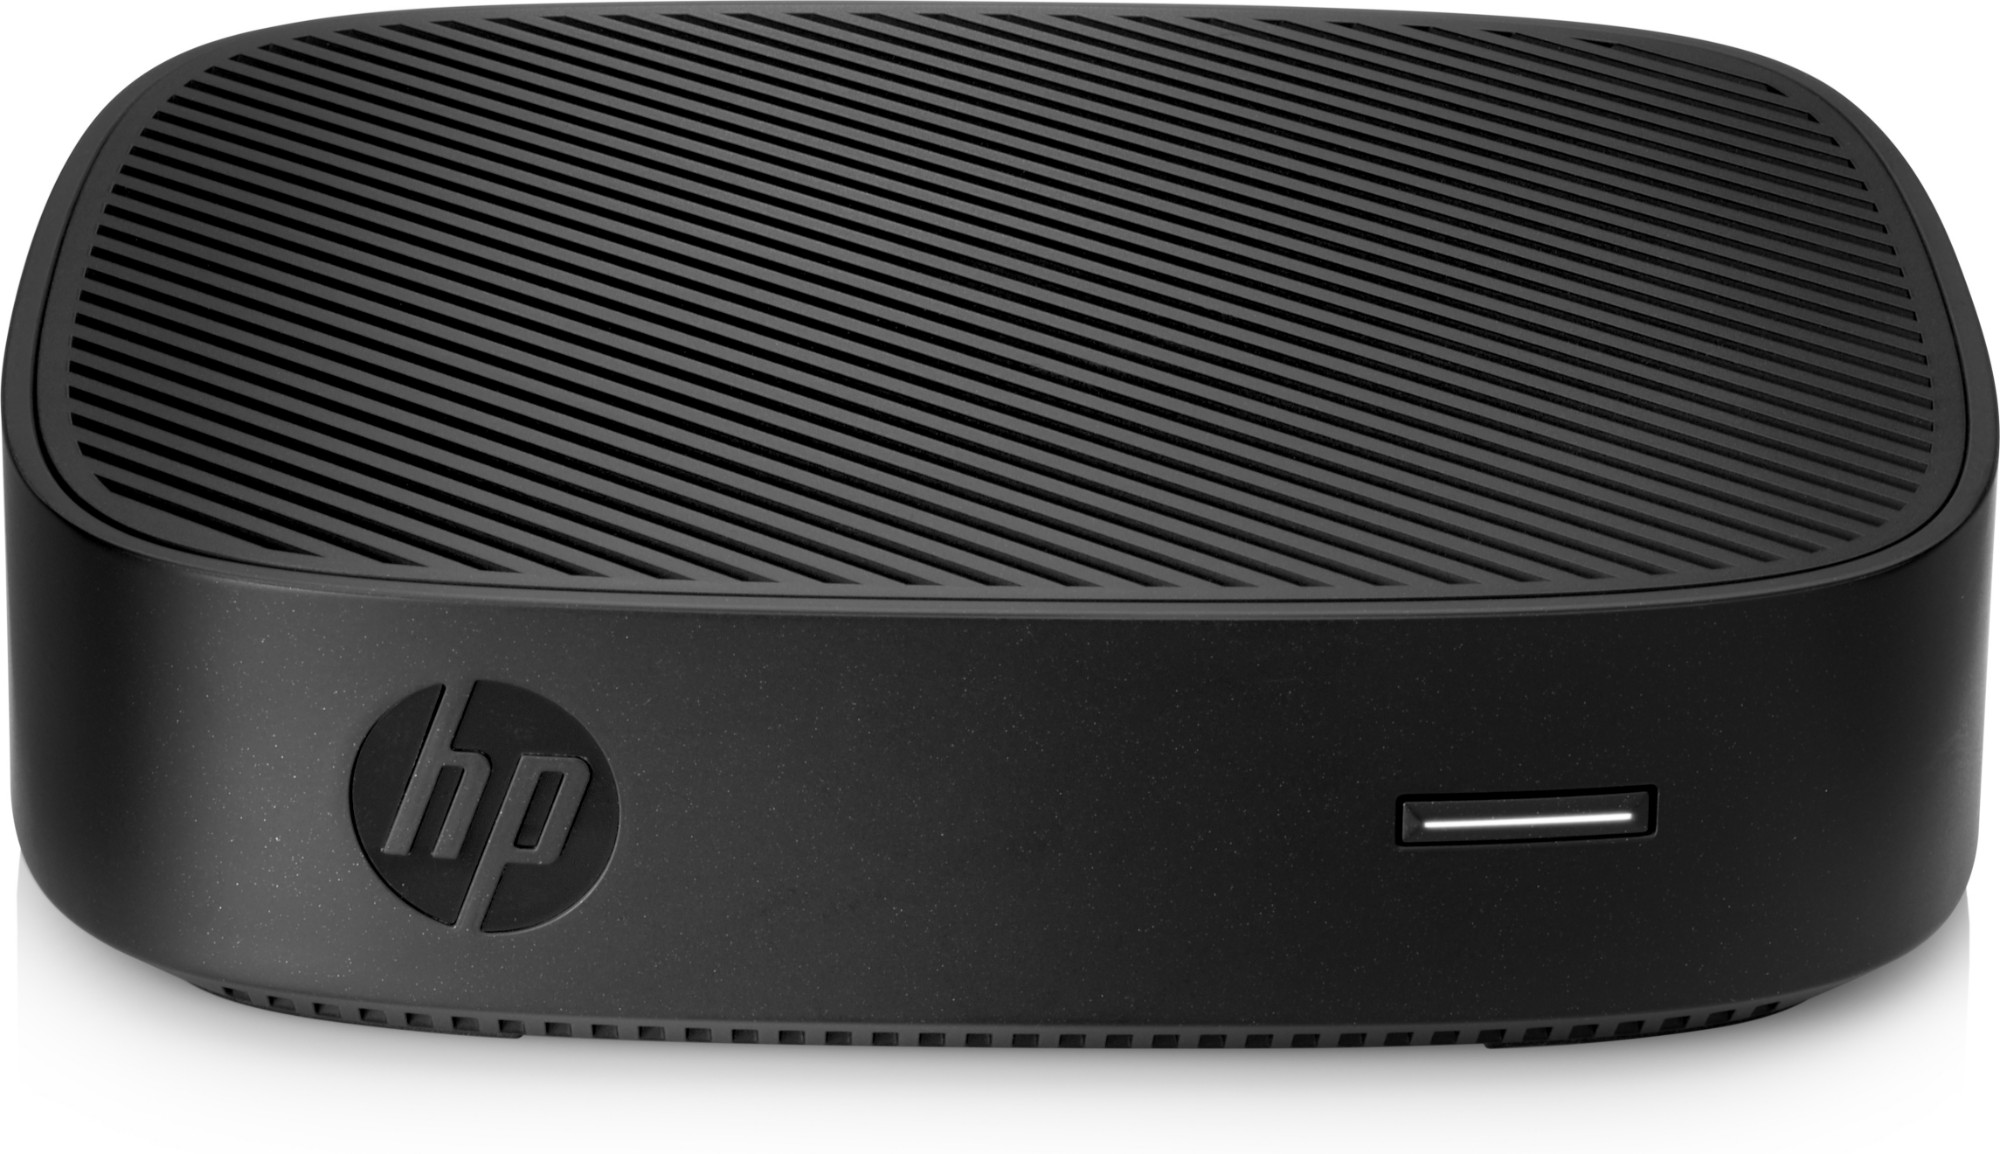 HP t430 1,1 GHz N4000 Negro ThinPro 740 g